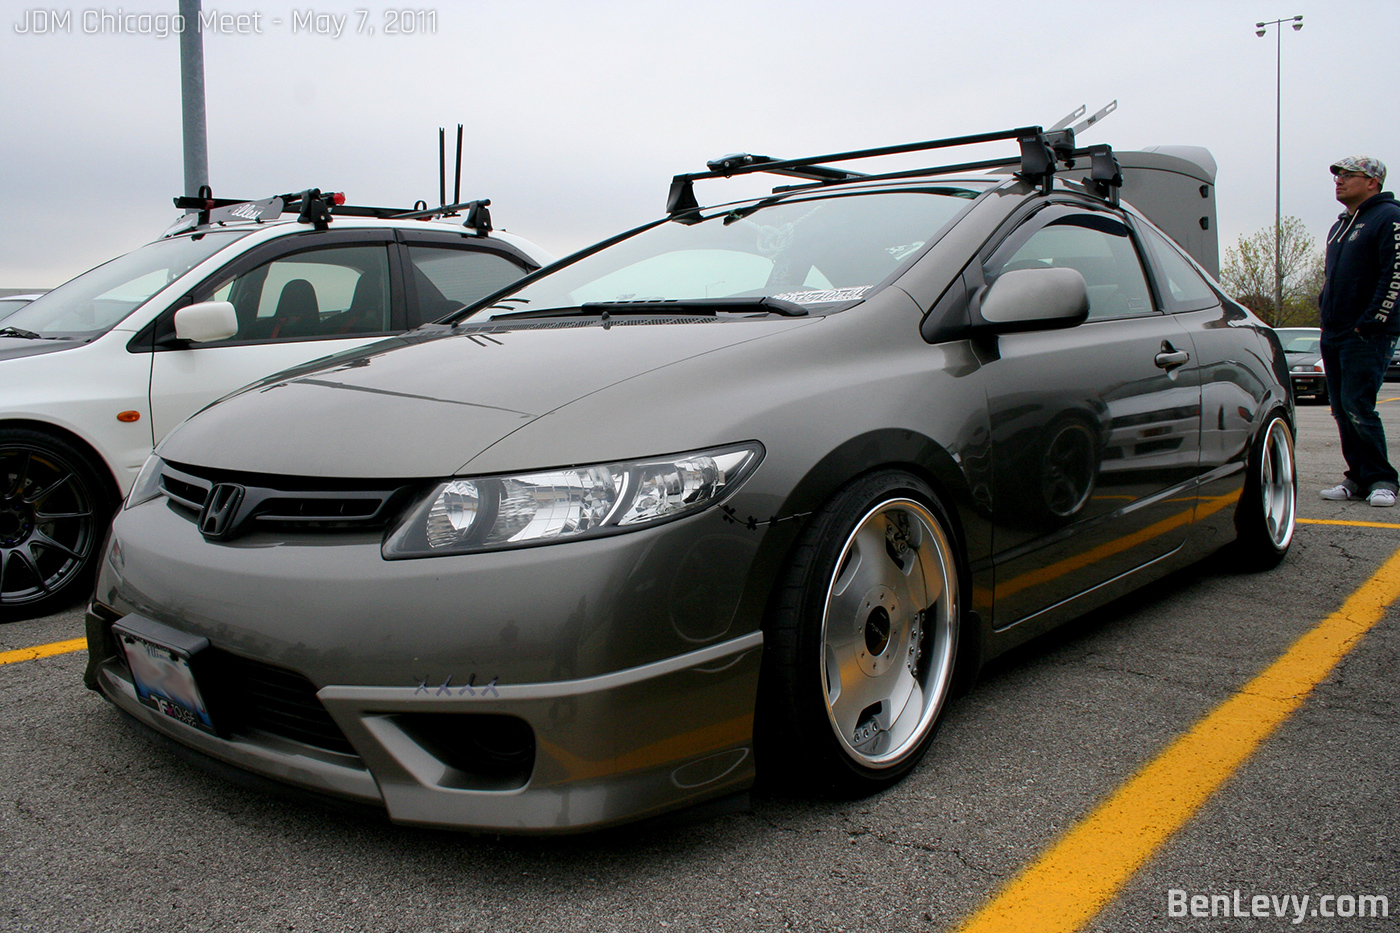 Honda Civic Coupe With Roofrack Benlevy Com